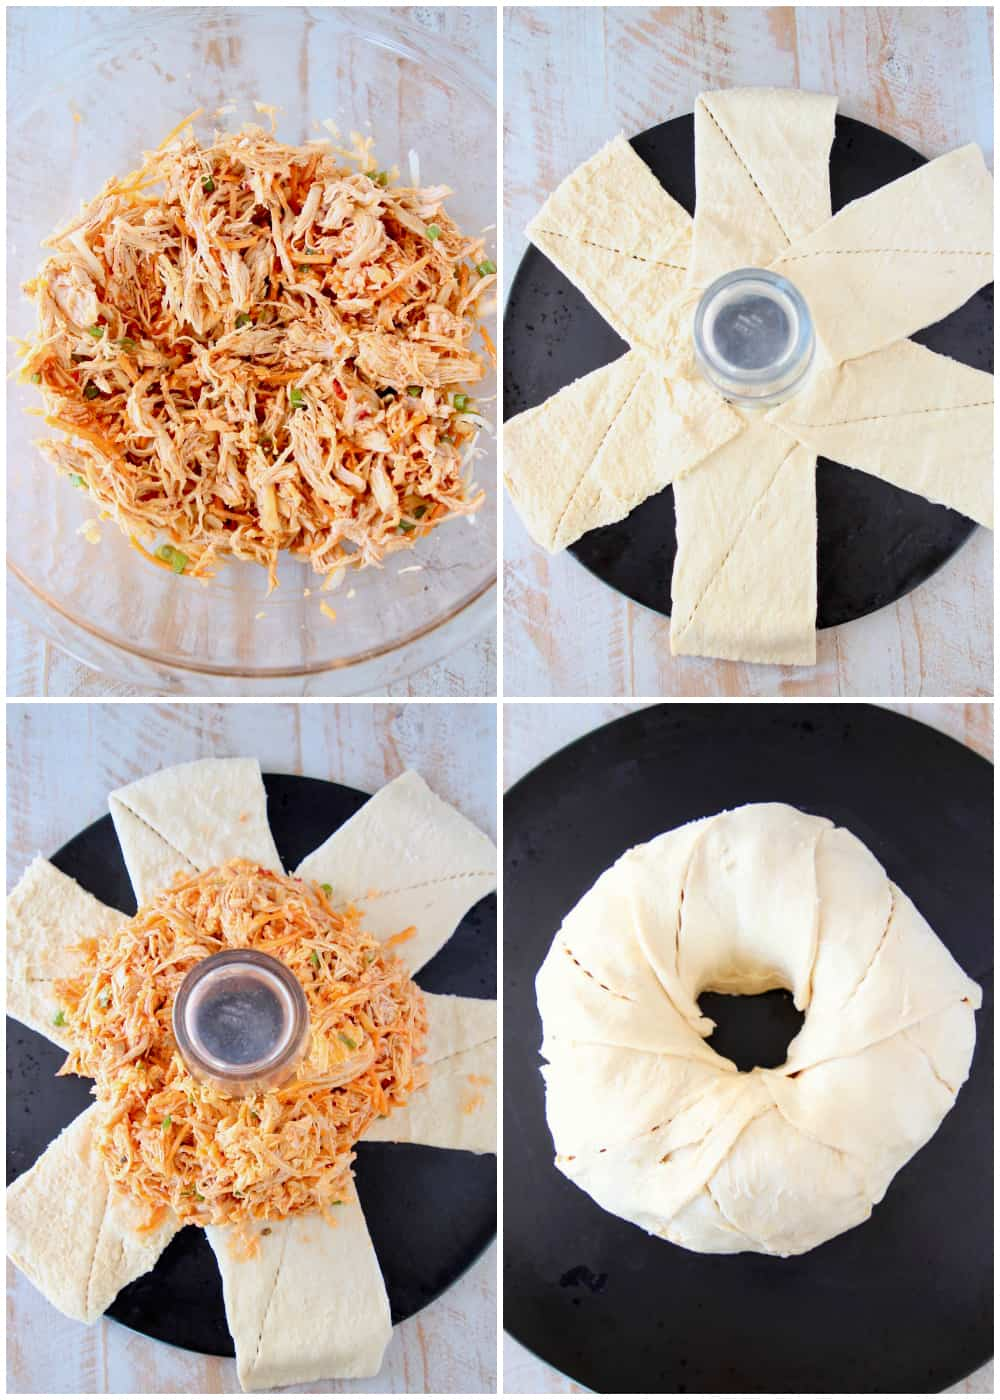 Instructional images how to make a buffalo chicken ring